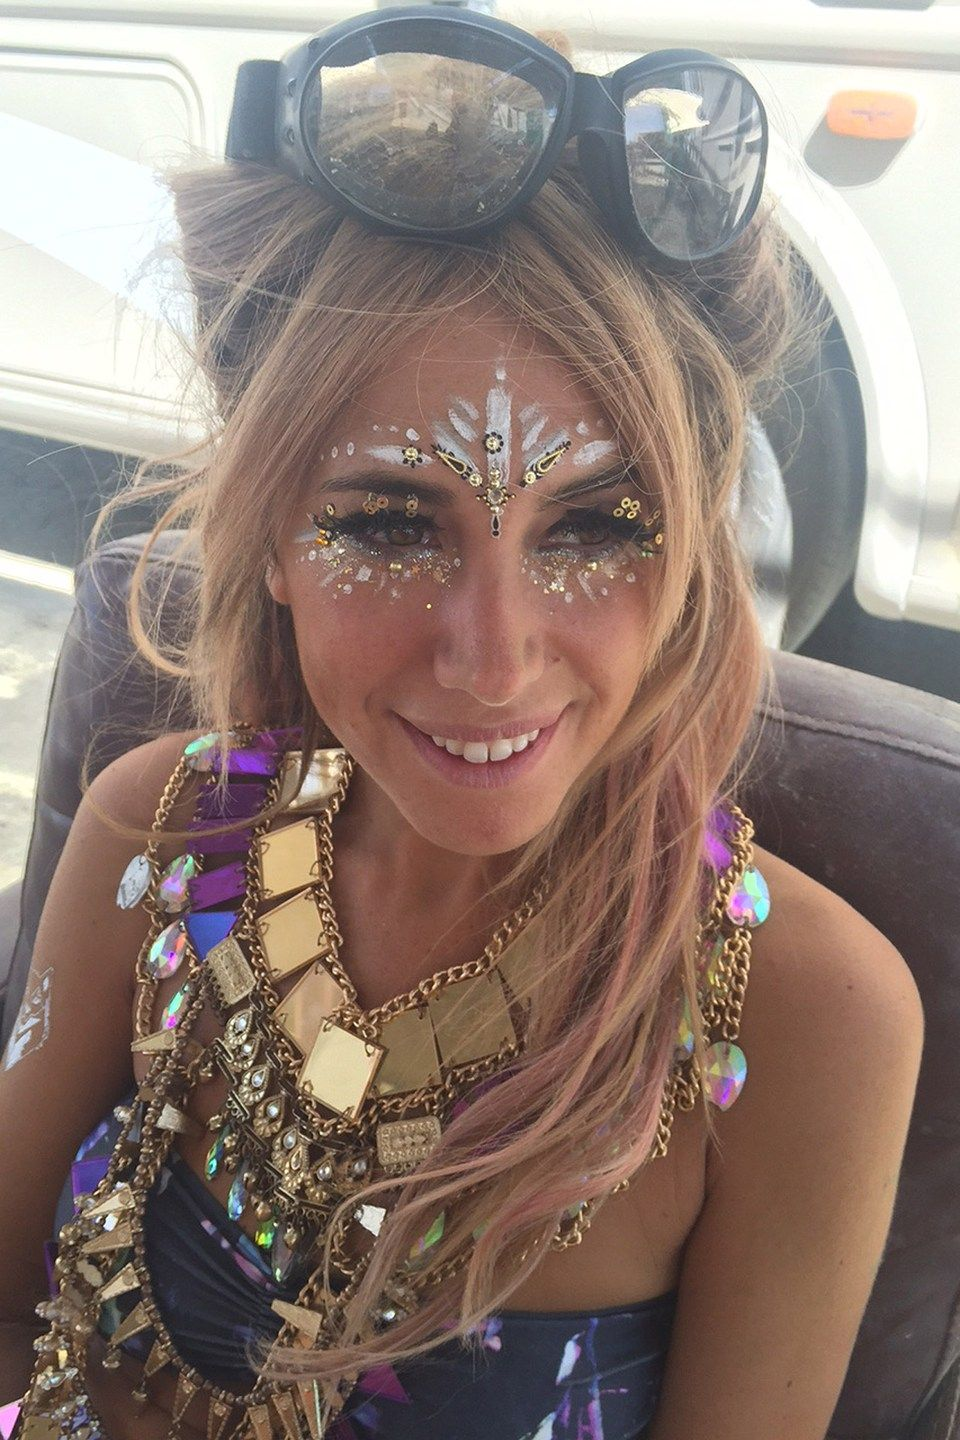 Sparkle shine glitter hair and makeup feathers shimmer - 10 Incredible Beauty Looks From Burning Man